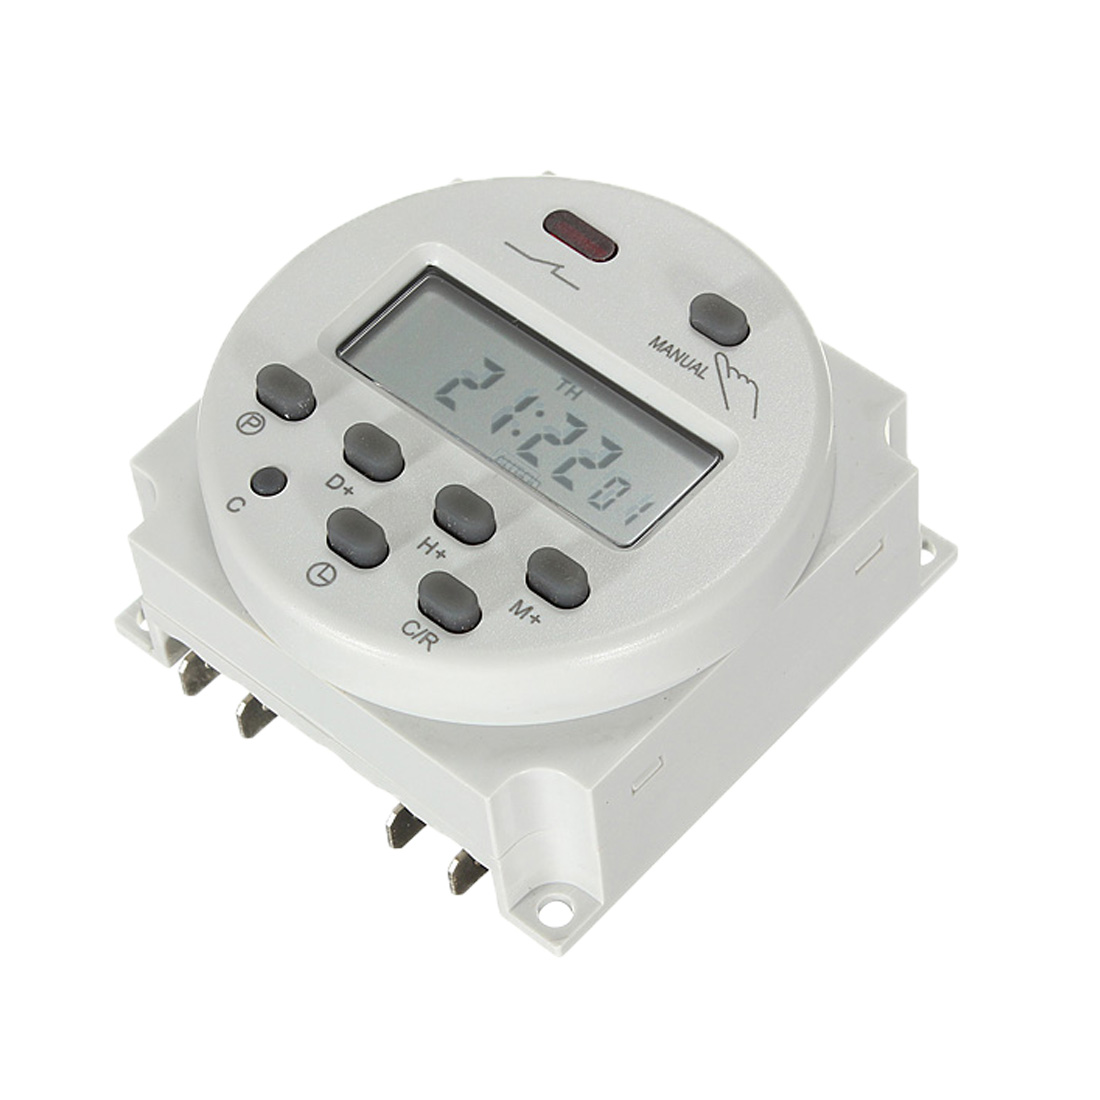 Mini AC 12V 220V Digital LCD Power Timer Programmable Time Switch Relay Timers thc15a zb18b timer switchelectronic weekly 7days programmable digital time switch relay timer control ac 220v 30a din rail mount